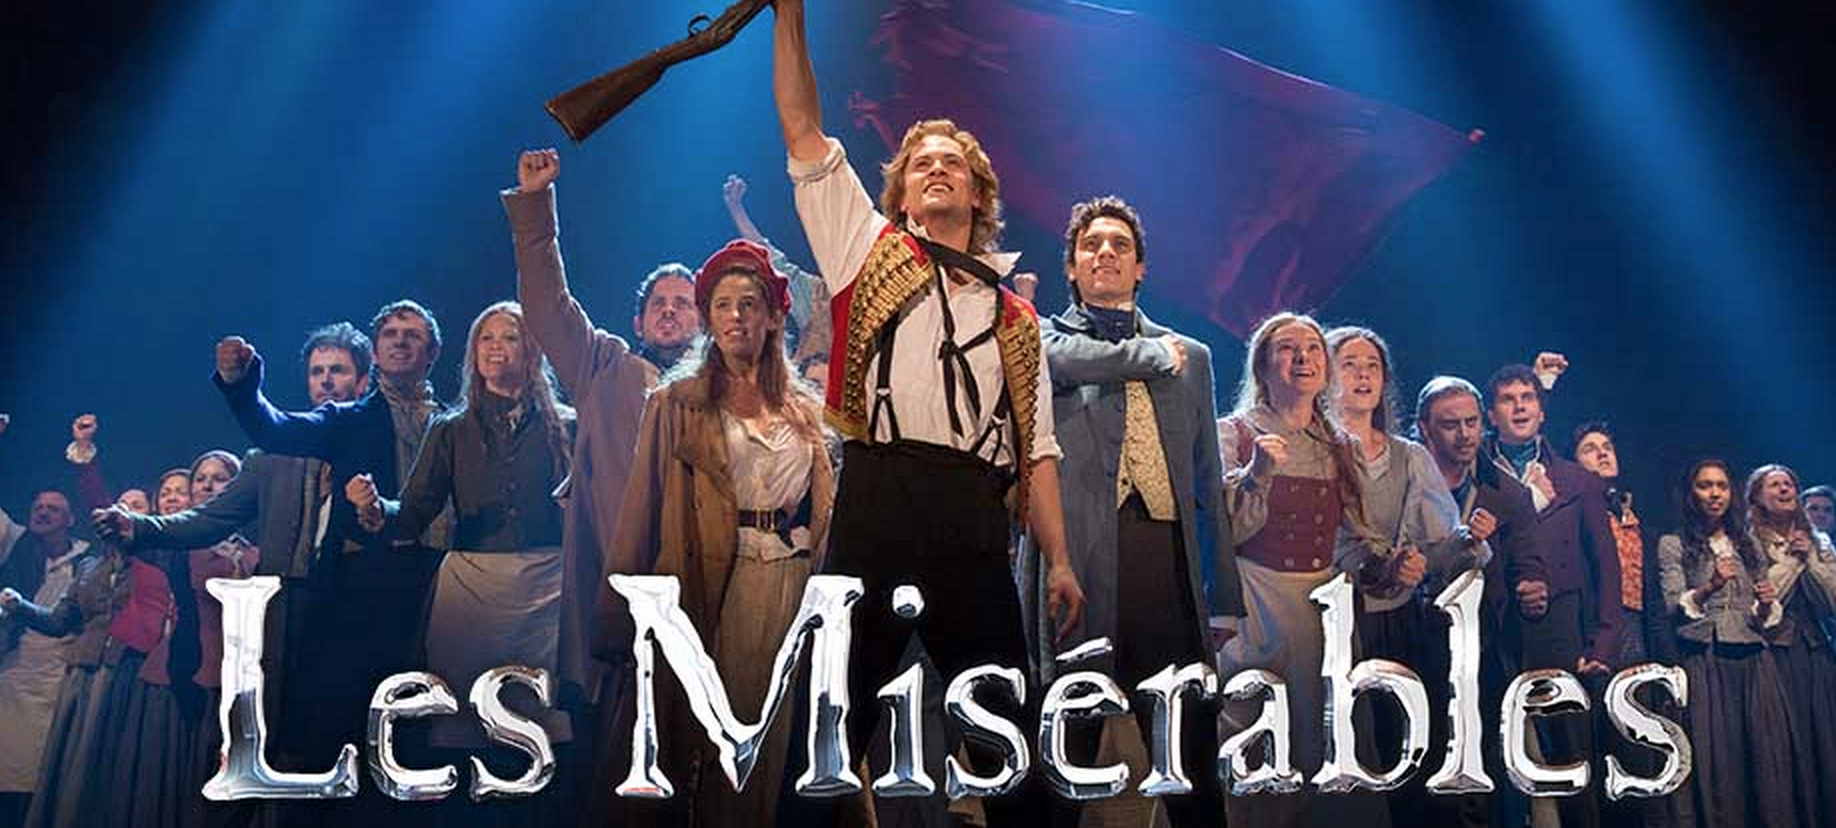 2015 Les Miserables end of Act 1 formation. Photo: Capitol Theater website